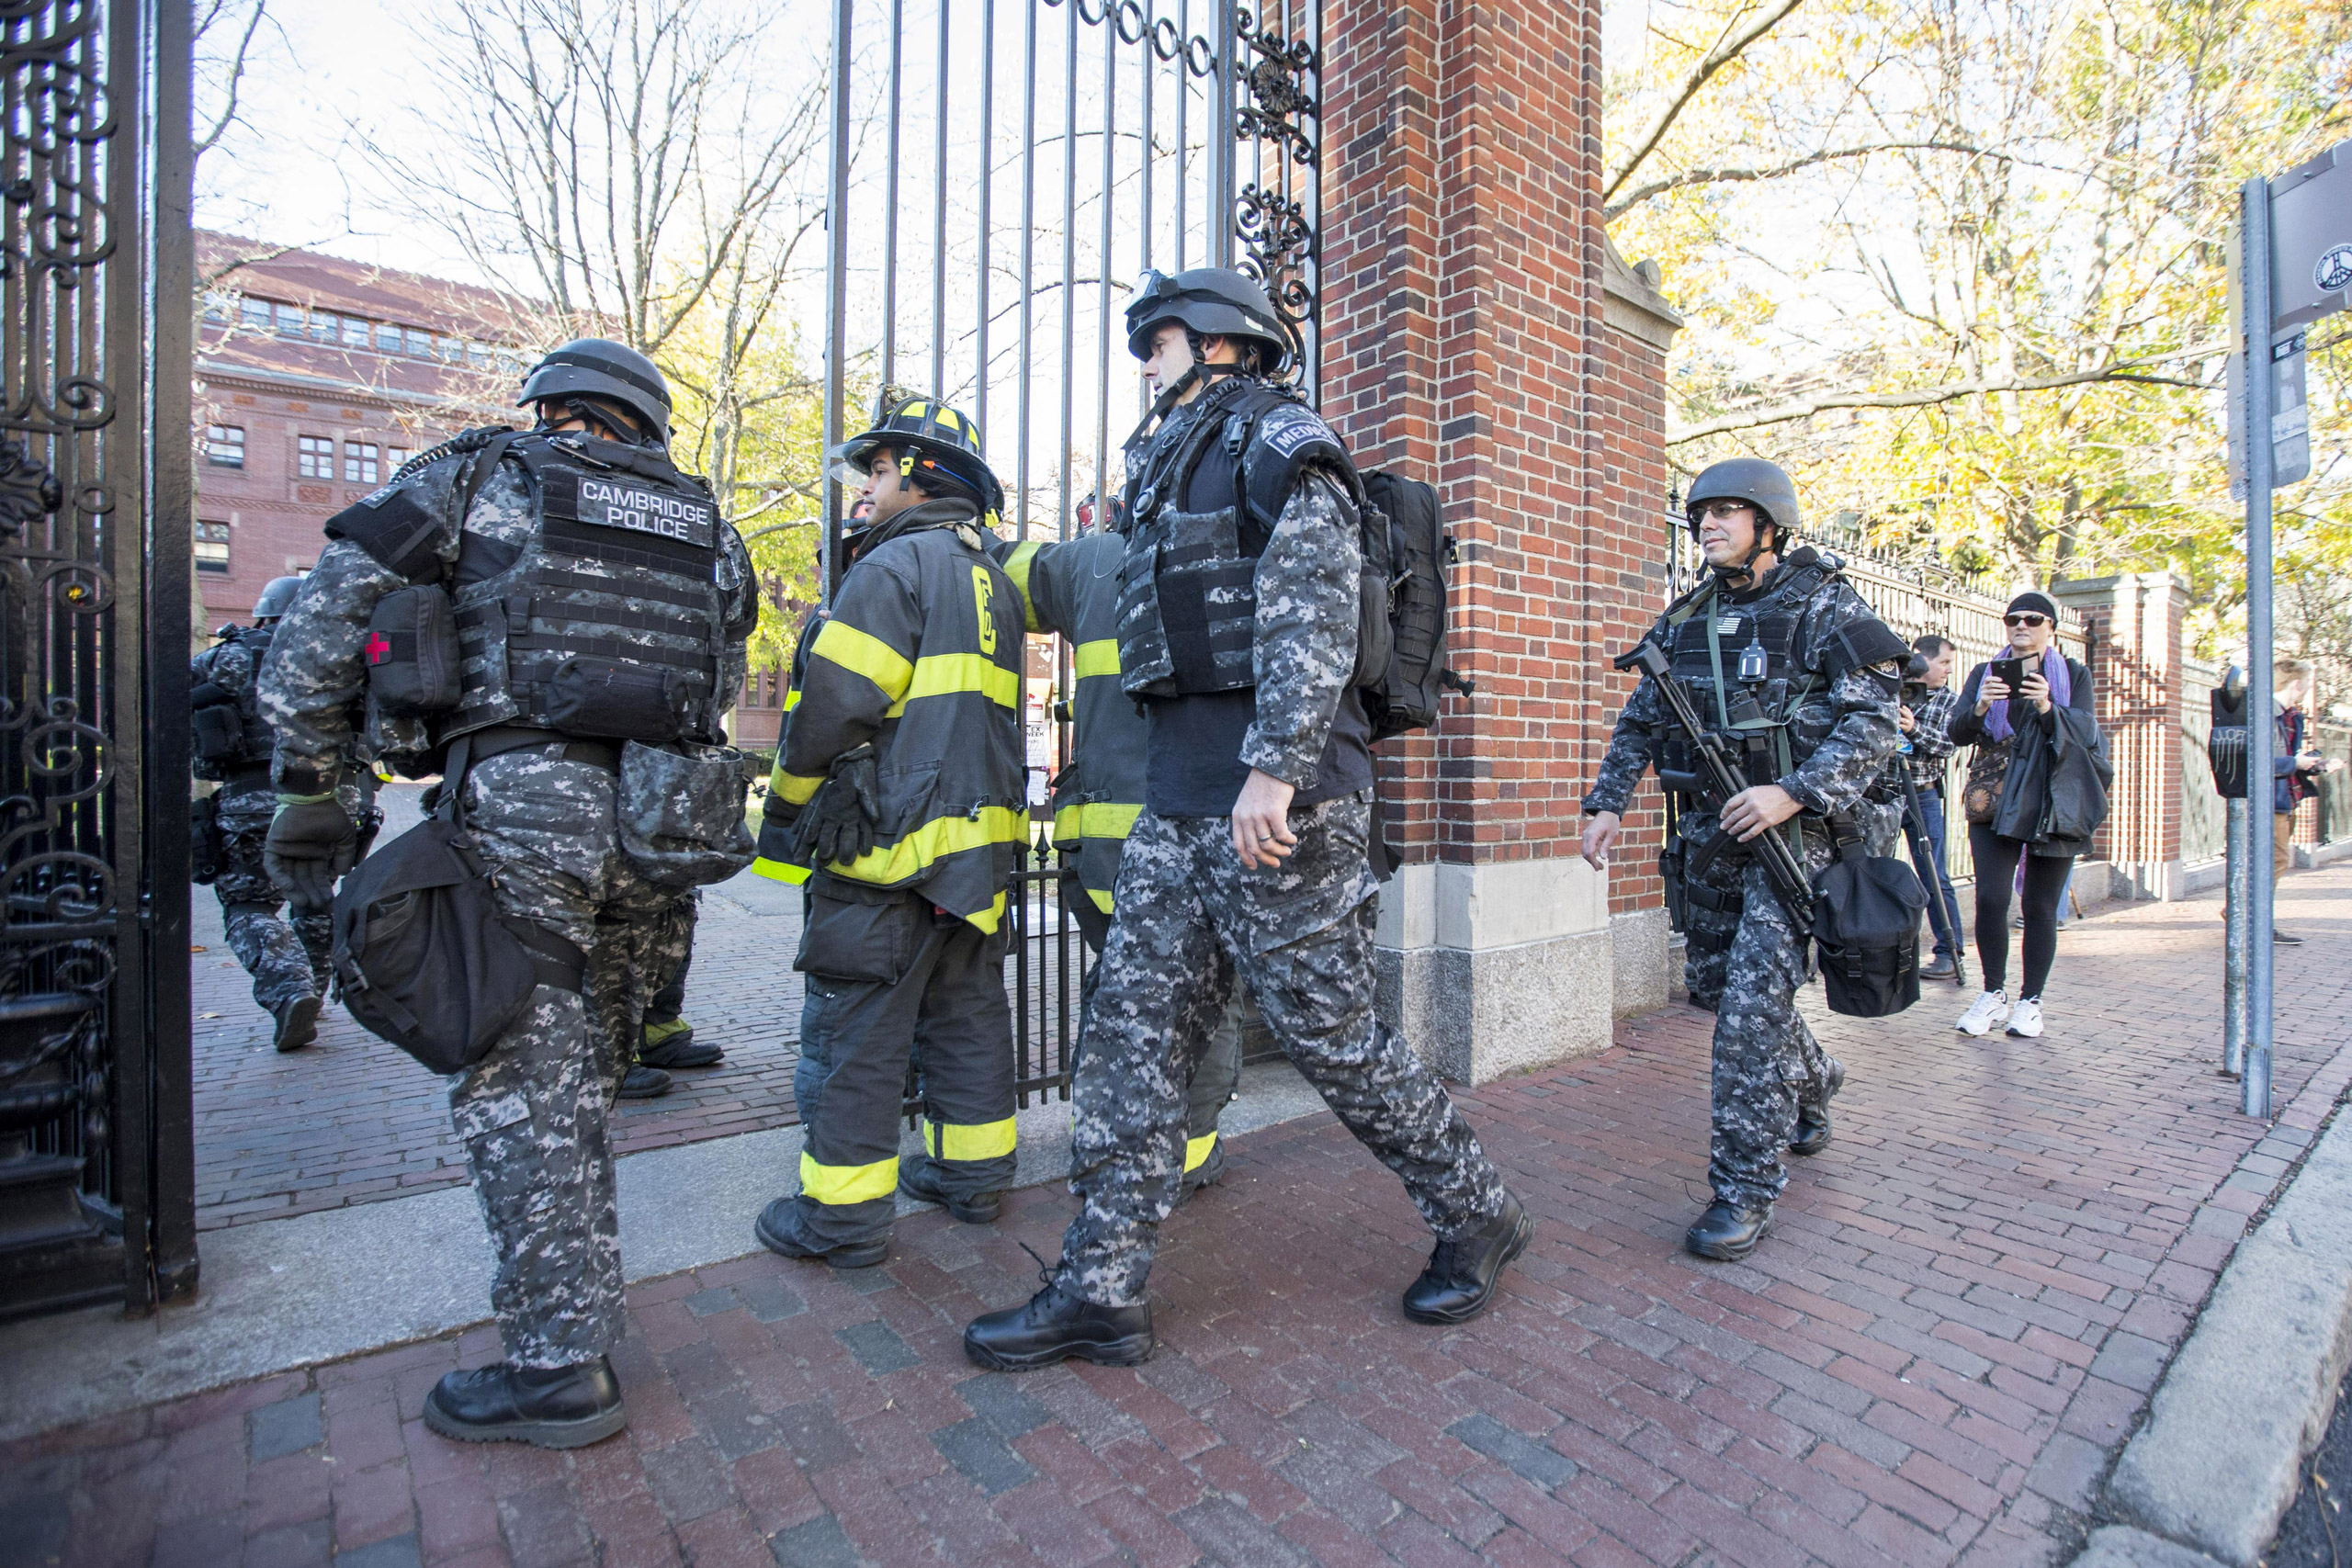 Cambridge Police SWAT team members arrive at Harvard Yard following a bomb threat that was made on campus in Cambridge, Mass., on Nov. 16, 2015.